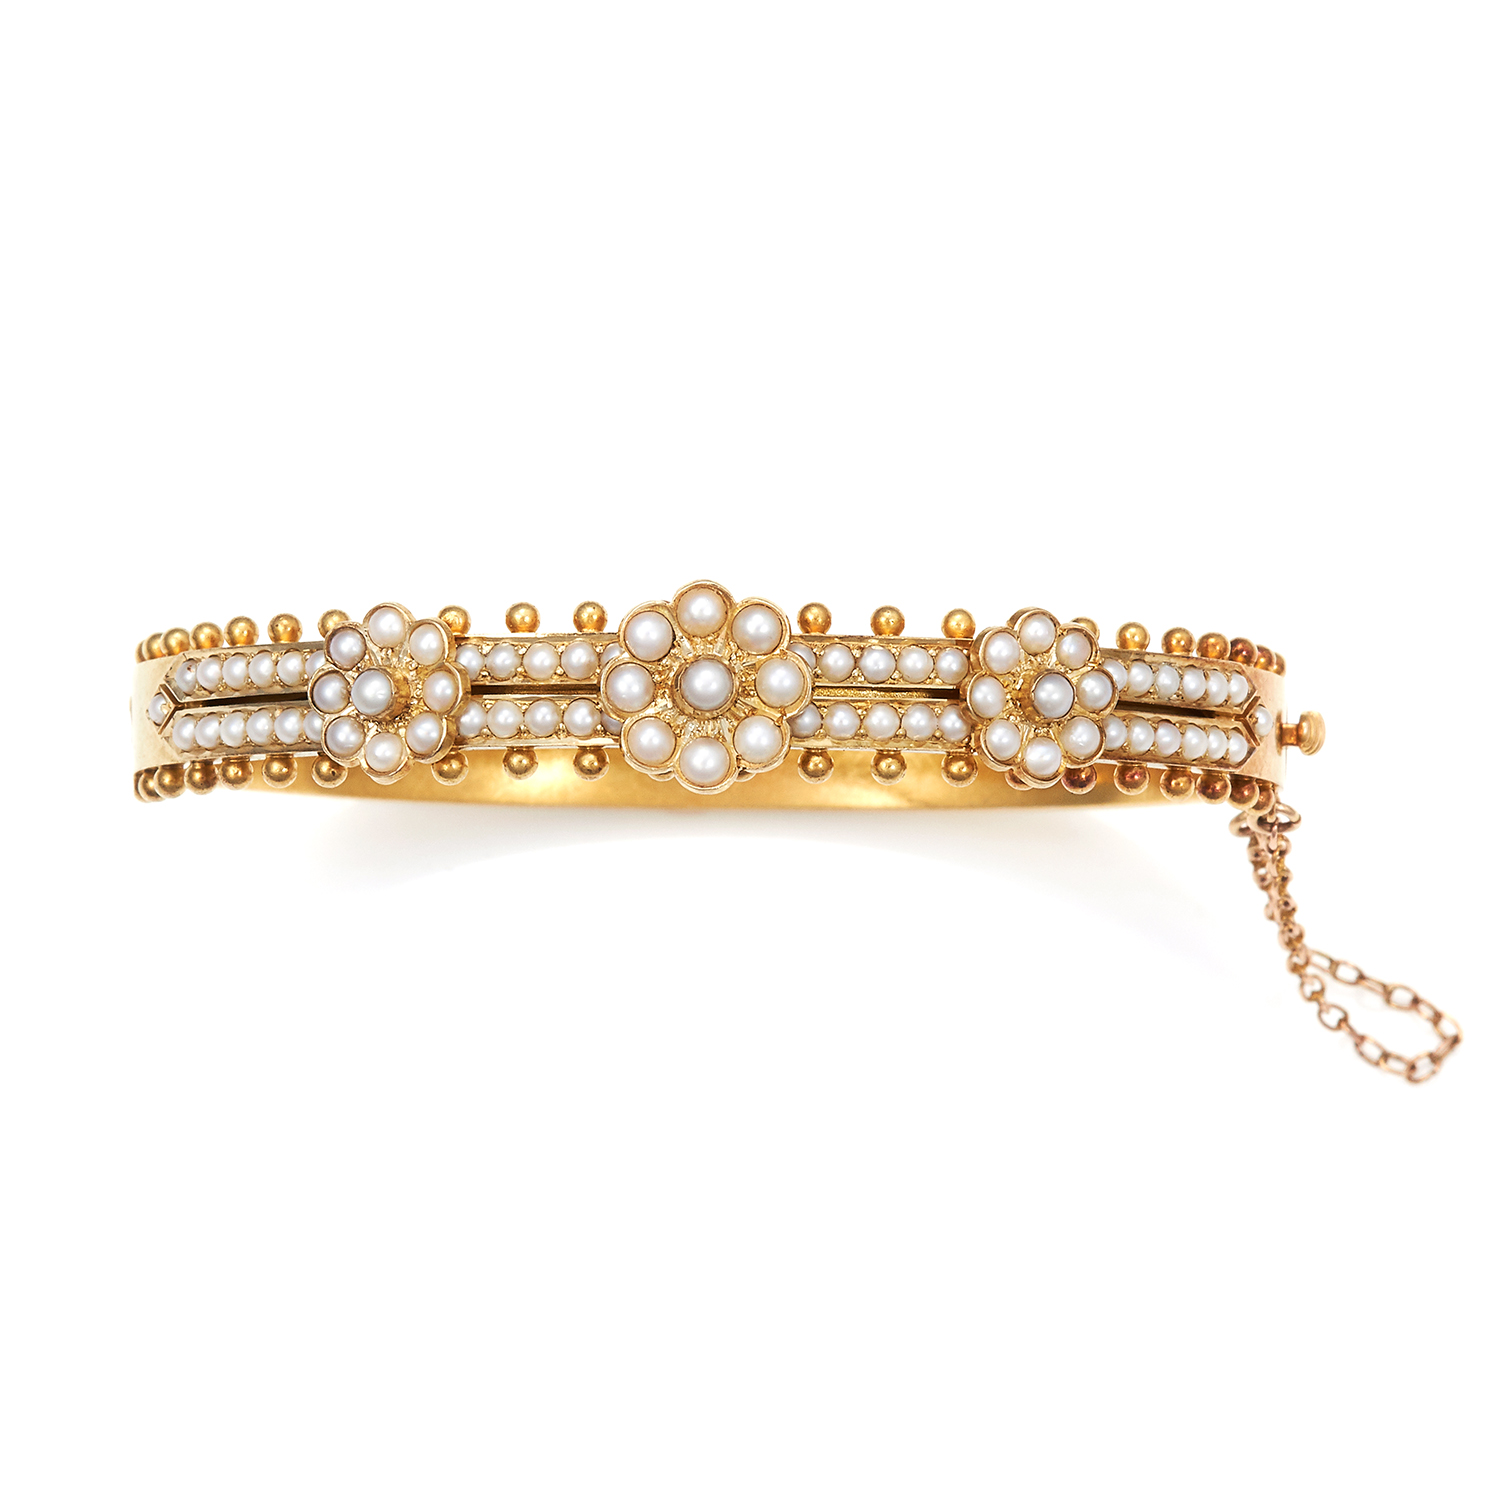 Los 1 - AN ANTIQUE PEARL BANGLE, 19TH CENTURY in high carat yellow gold, half jewelled with pearl cluster